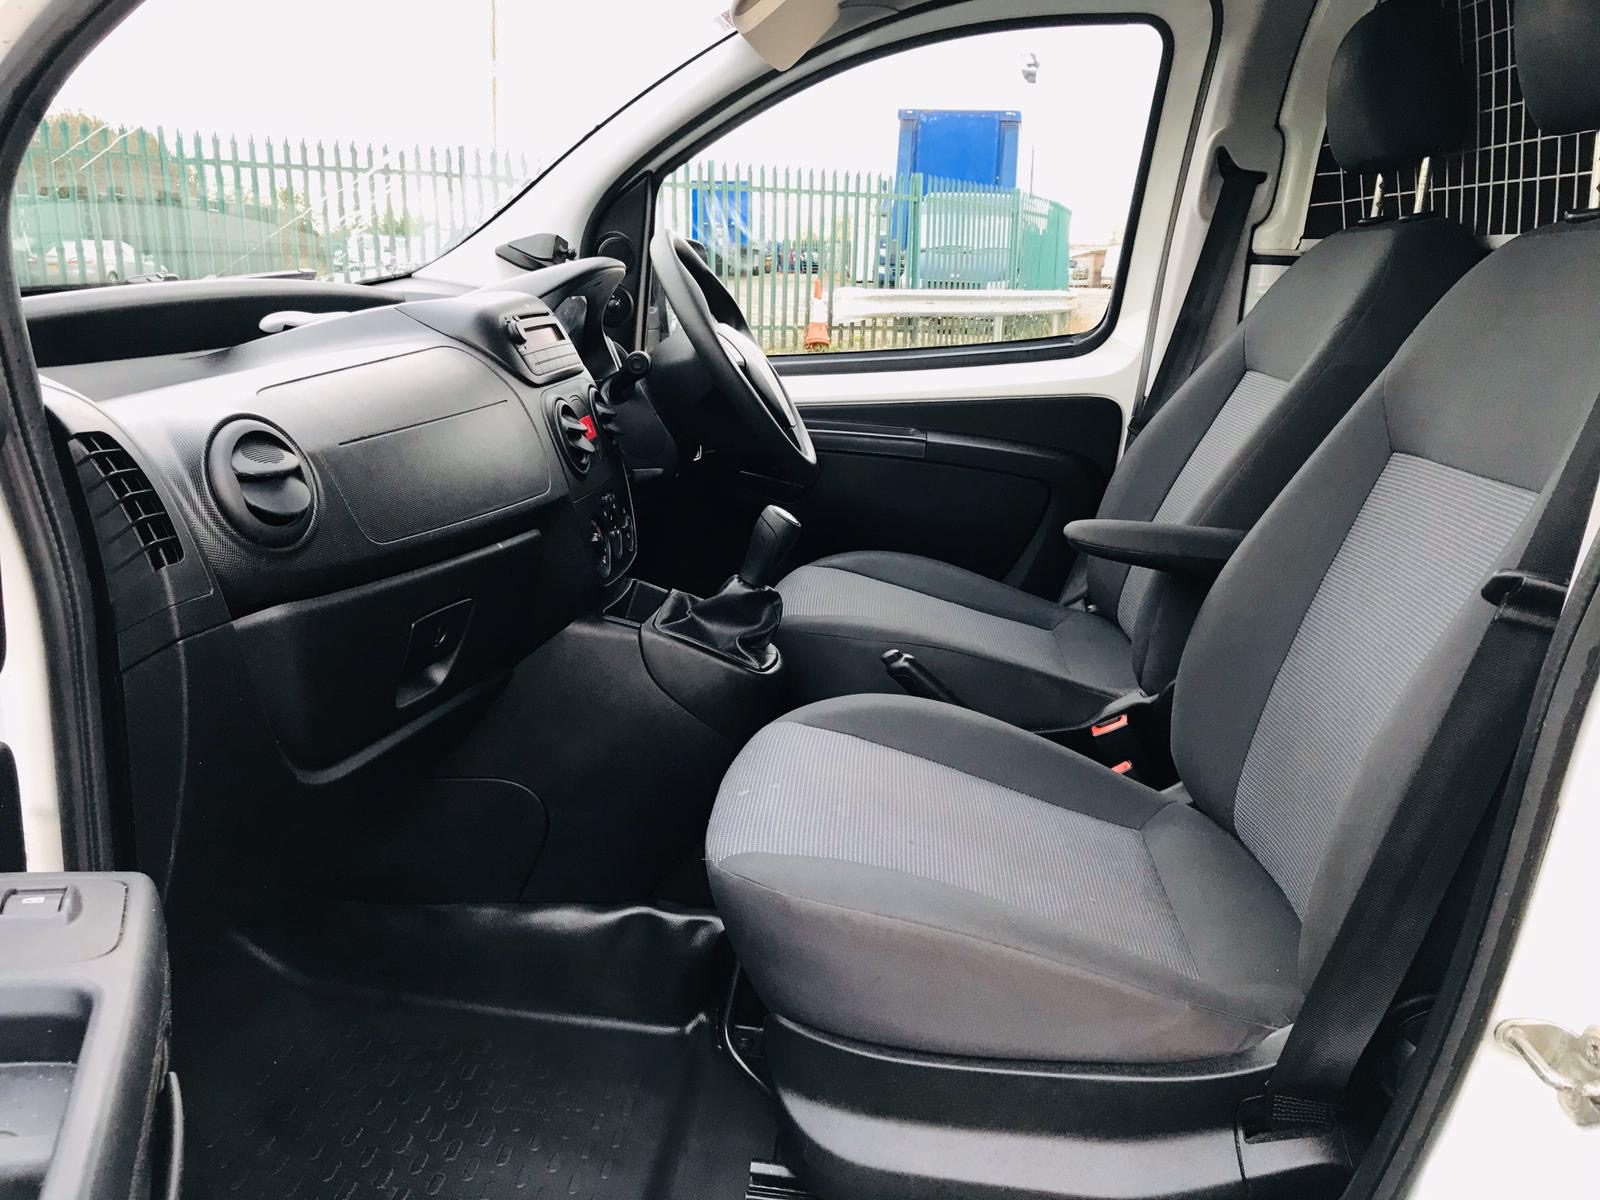 """(ON SALE) PEUGEOT BIPPER 1.3""""HDI"""" PROFESSIONAL - 2016 MODEL - 1 OWNER - FSH - AIR CON - SLD - Image 12 of 13"""